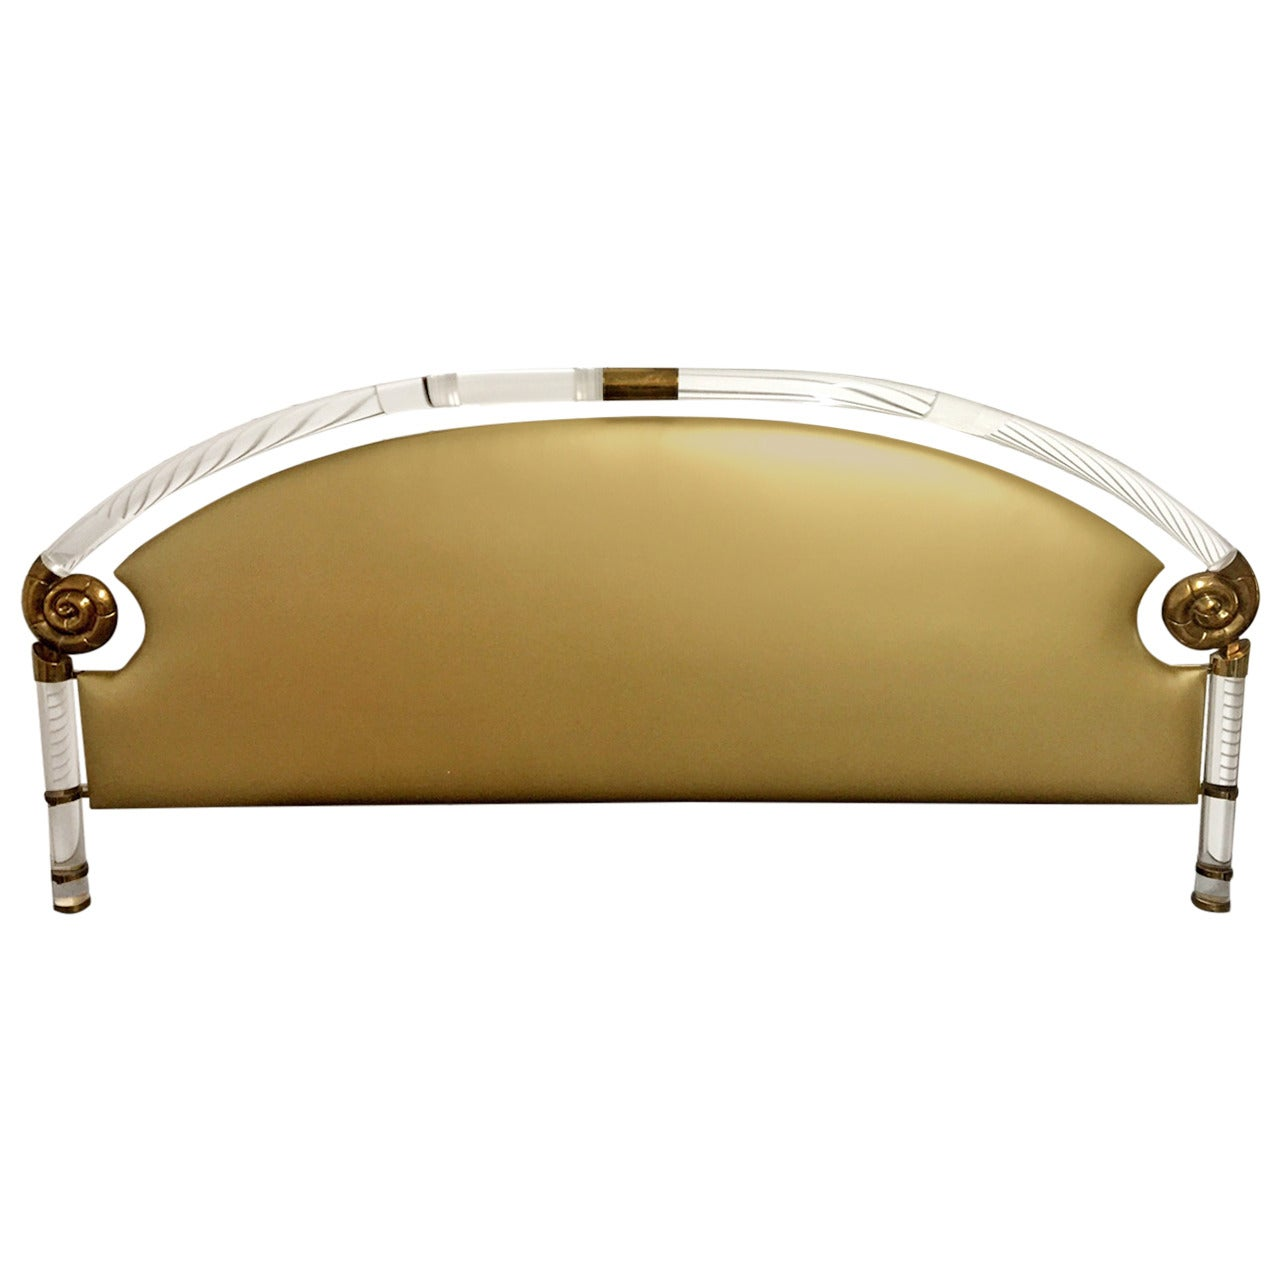 Most Glamorous Headboard by Marcello Mioni